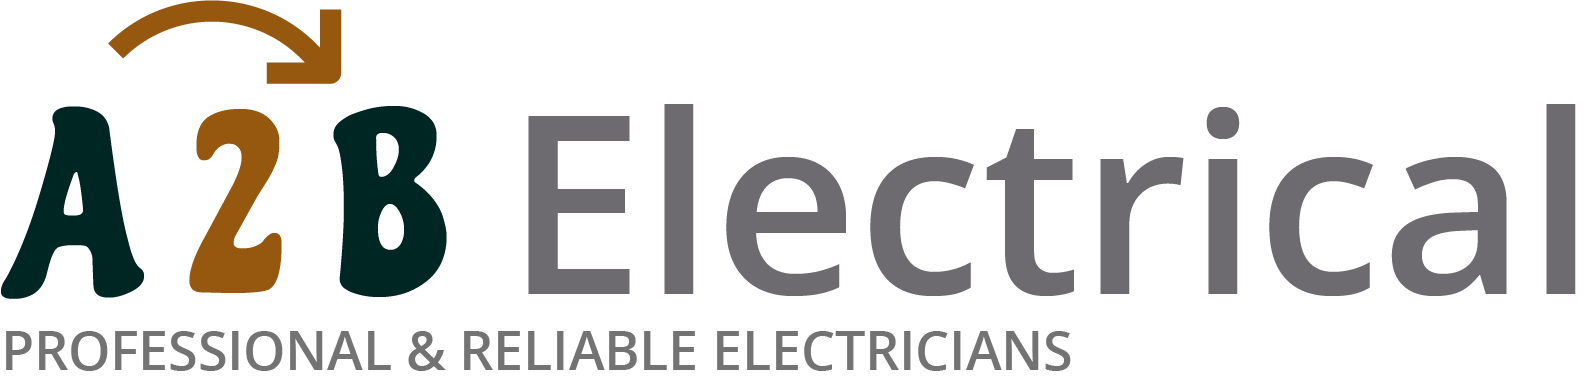 If you have electrical wiring problems in Oxhey, we can provide an electrician to have a look for you.